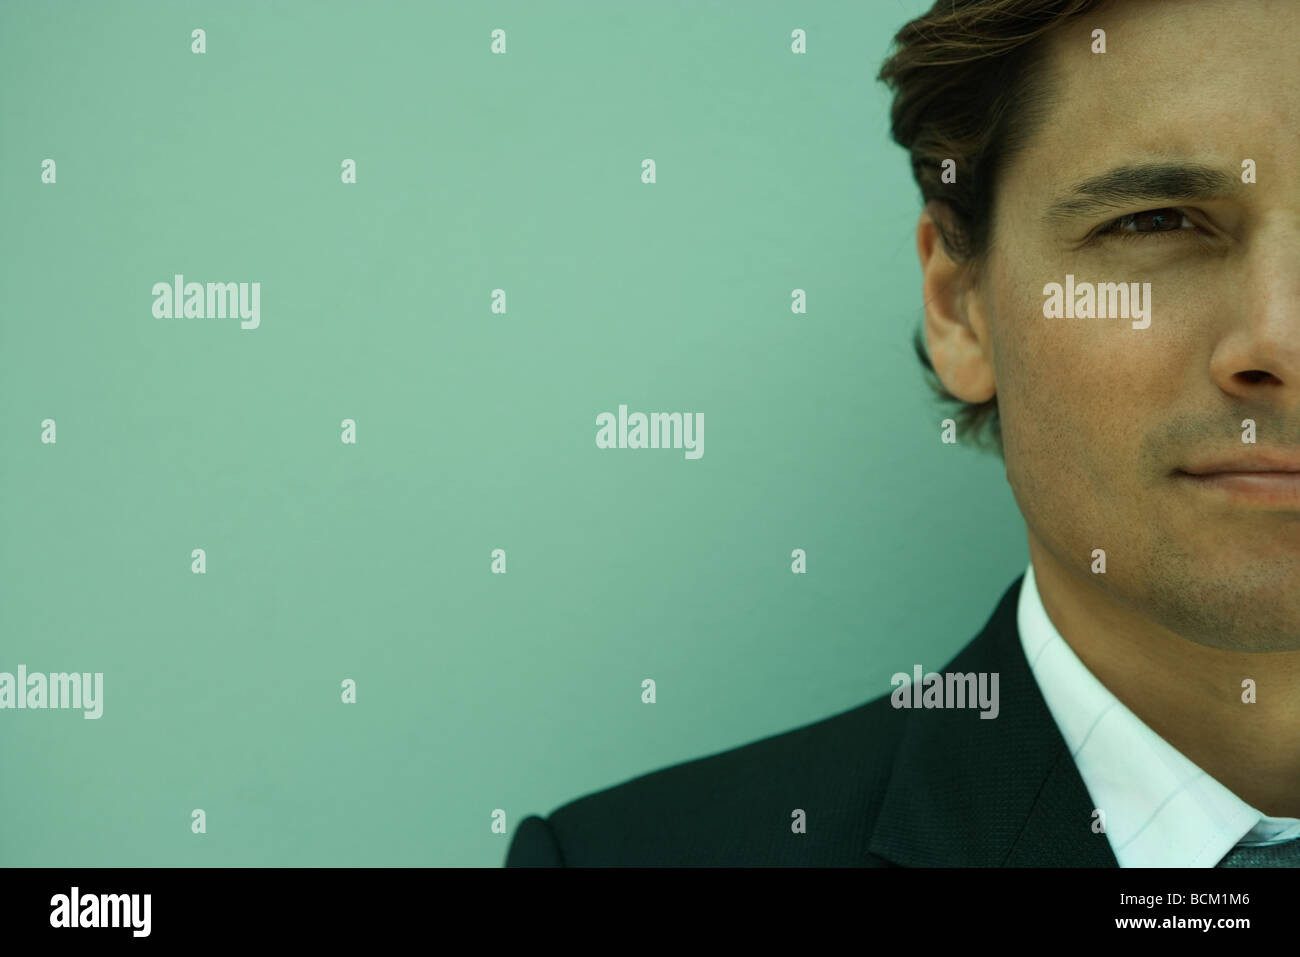 Close-up of businessman, portrait, cropped - Stock Image